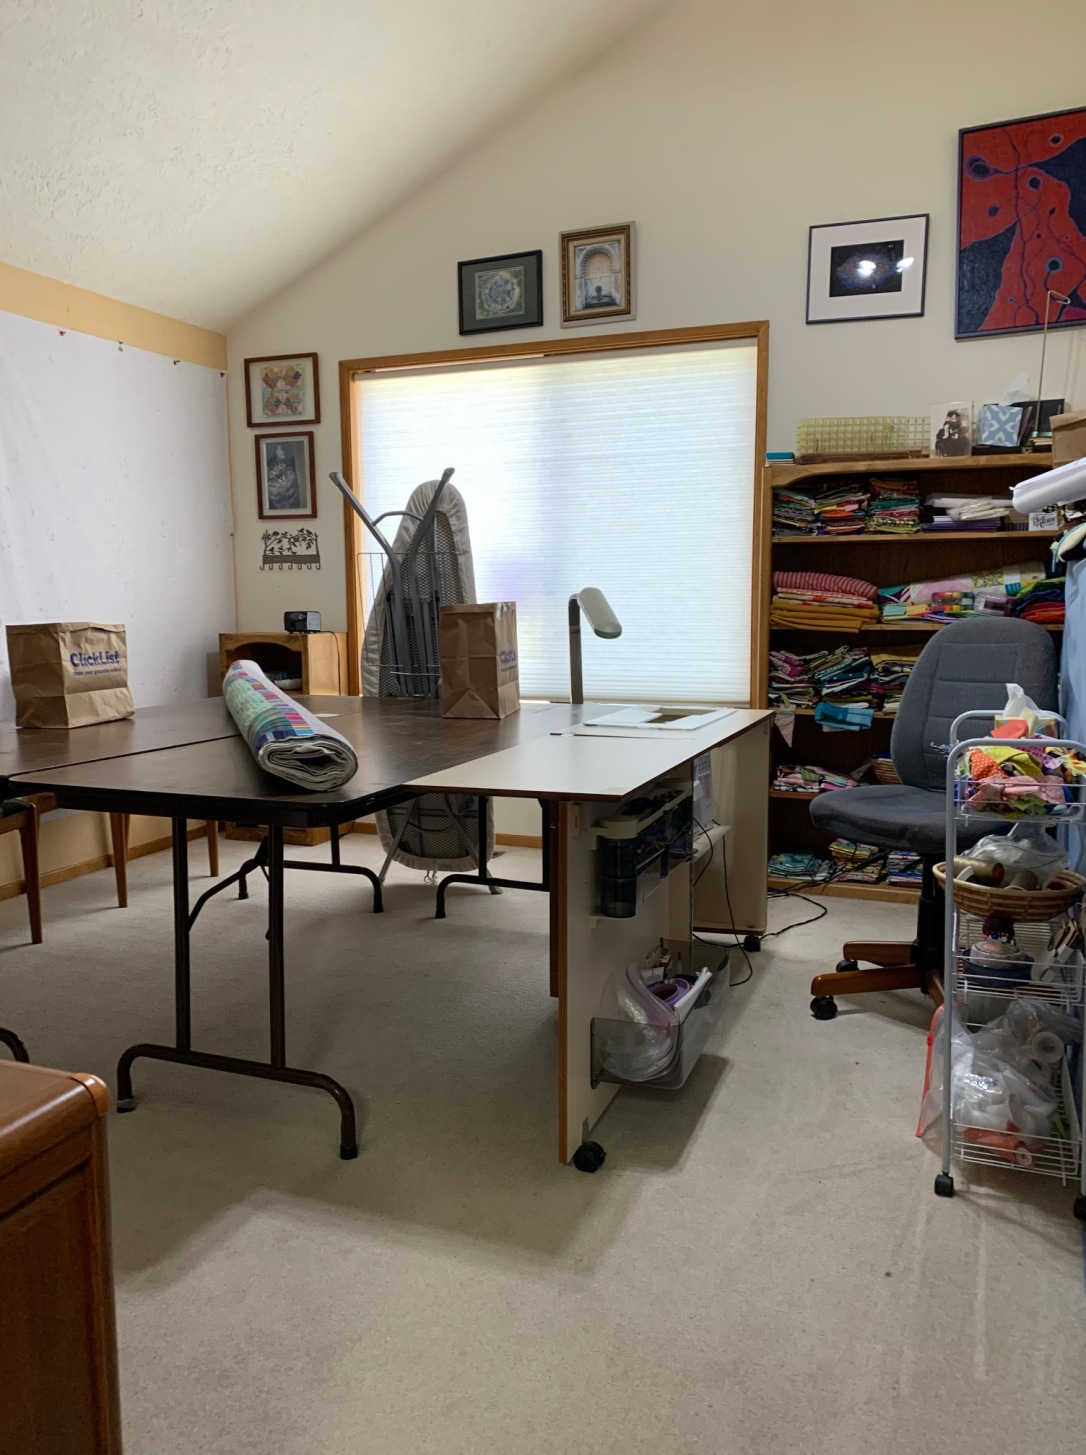 #8-sewing room